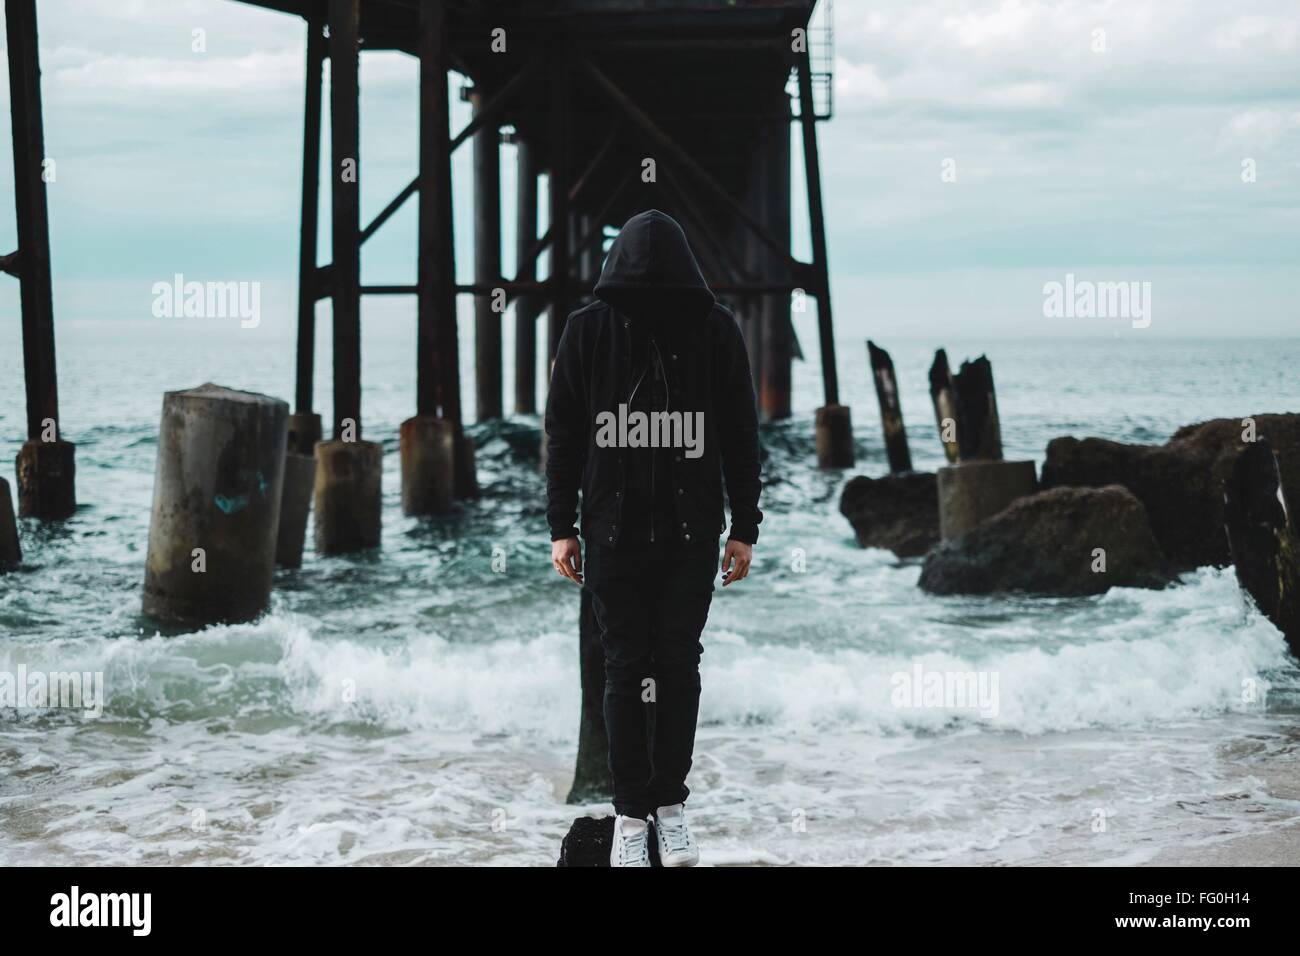 Mysterious Man Standing On Rock In Sea - Stock Image